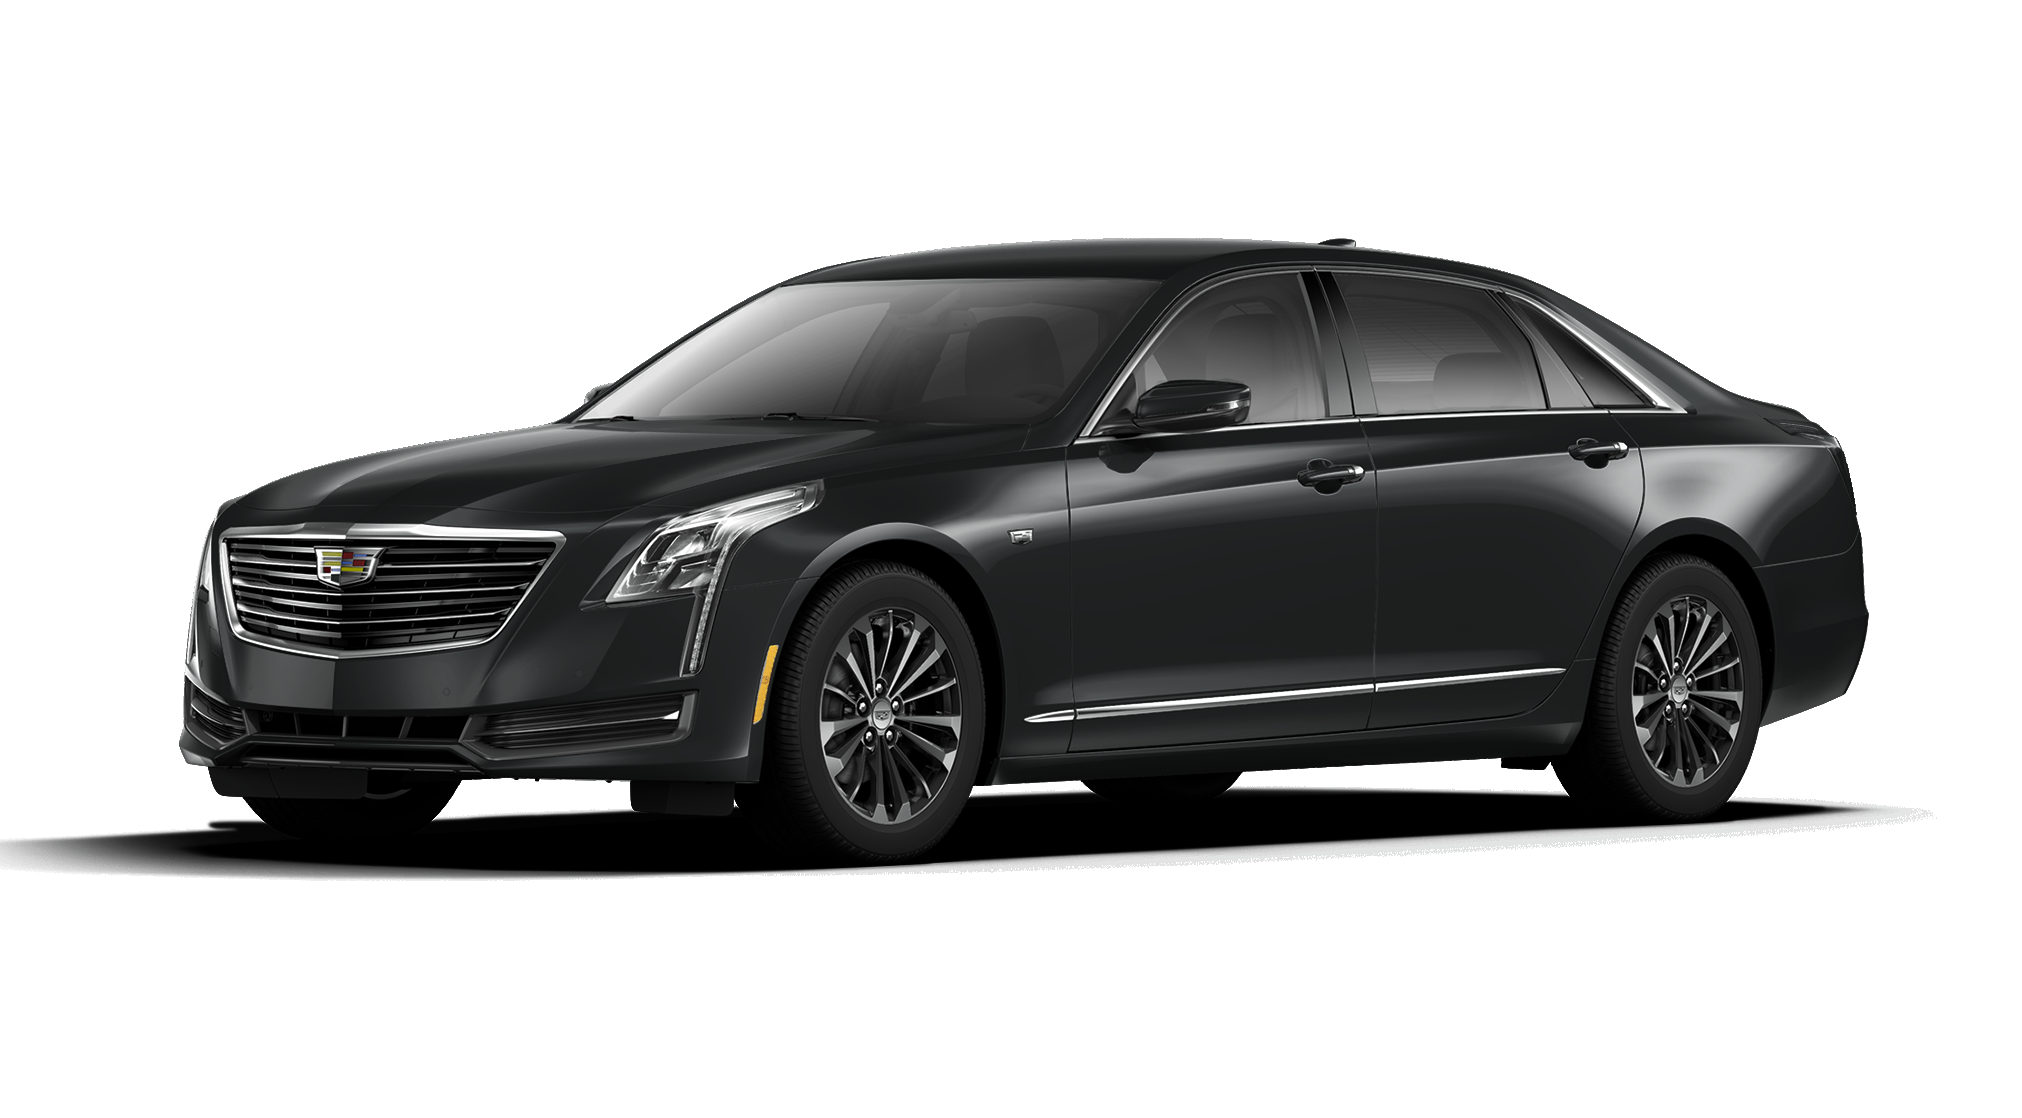 2017 Cadillac CT6 Graphite